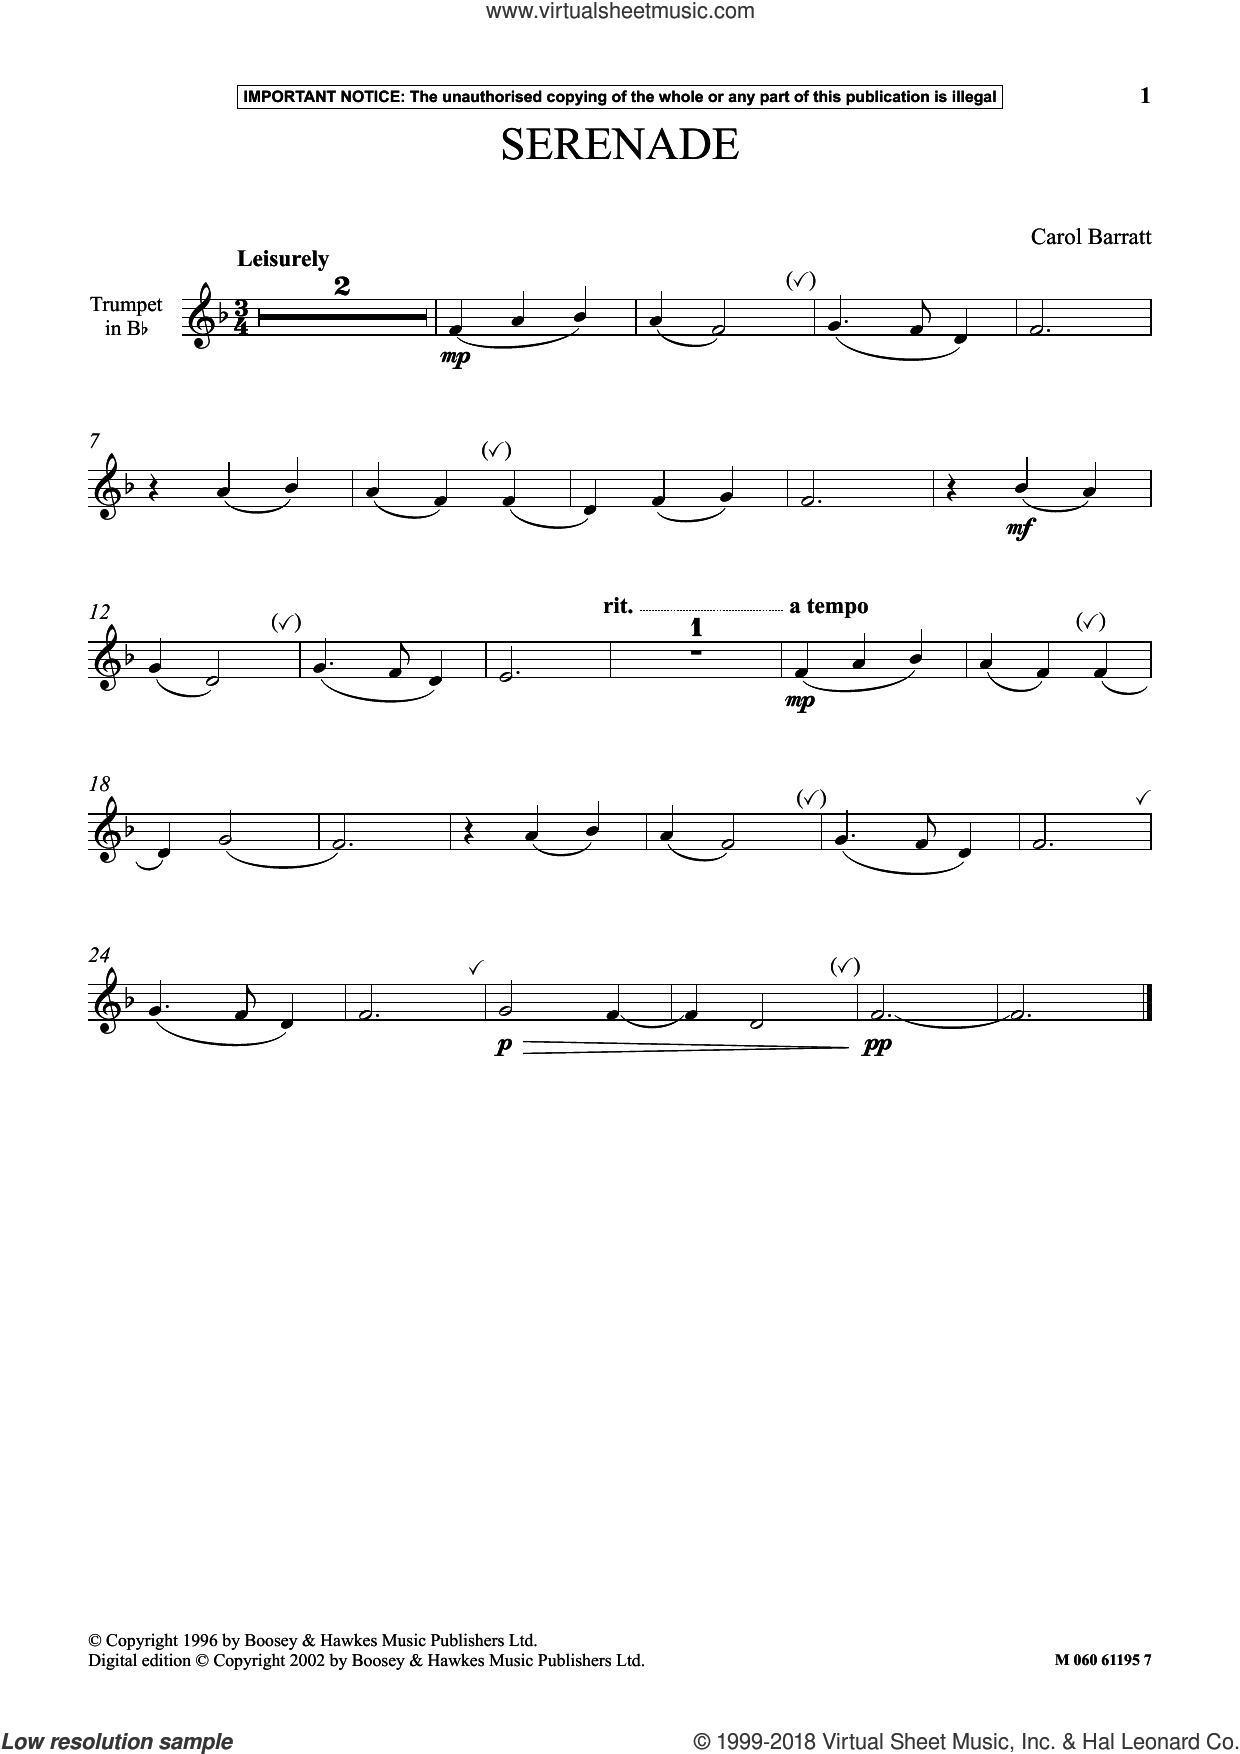 Serenade sheet music for trumpet solo by Carol Barratt, classical score, intermediate skill level